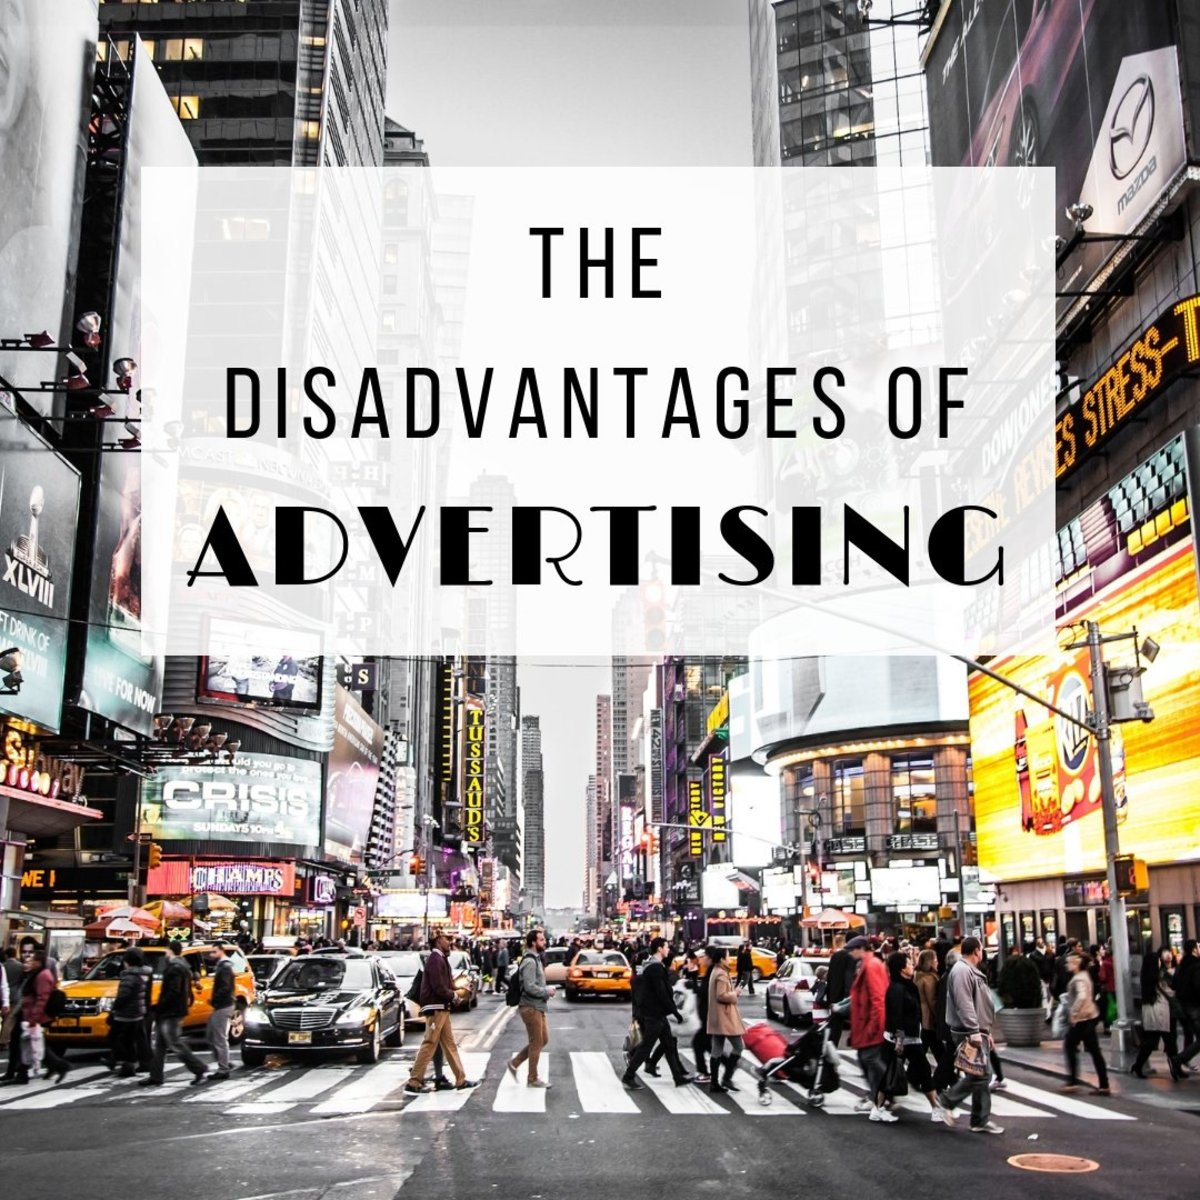 What are the disadvantages of advertising?